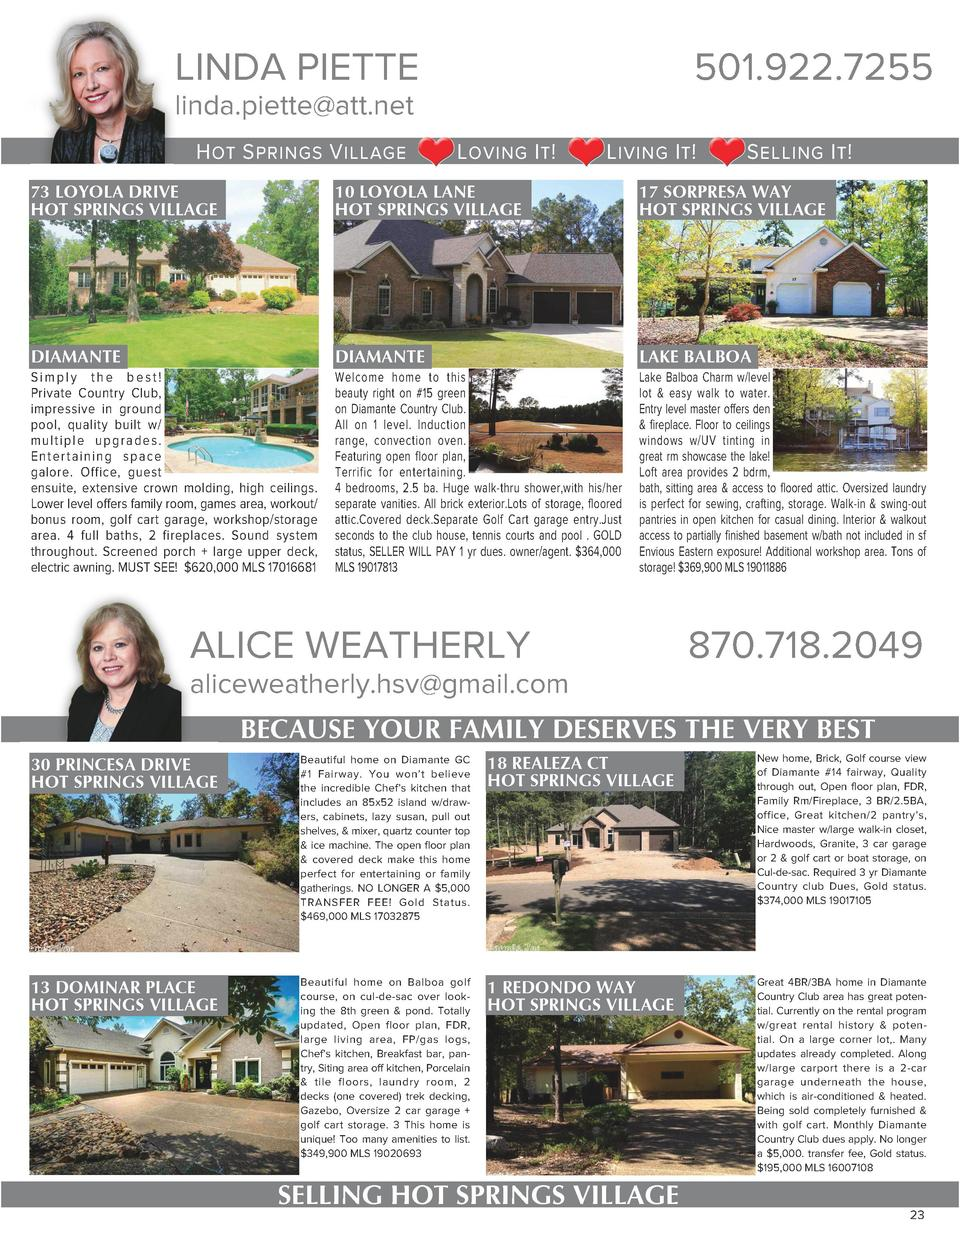 LINDA PIETTE  501.922.7255  linda.piette att.net HOT SPRINGS VILLAGE  LOVING IT   LIVING IT   SELLING IT   73 LOYOLA DRIVE...